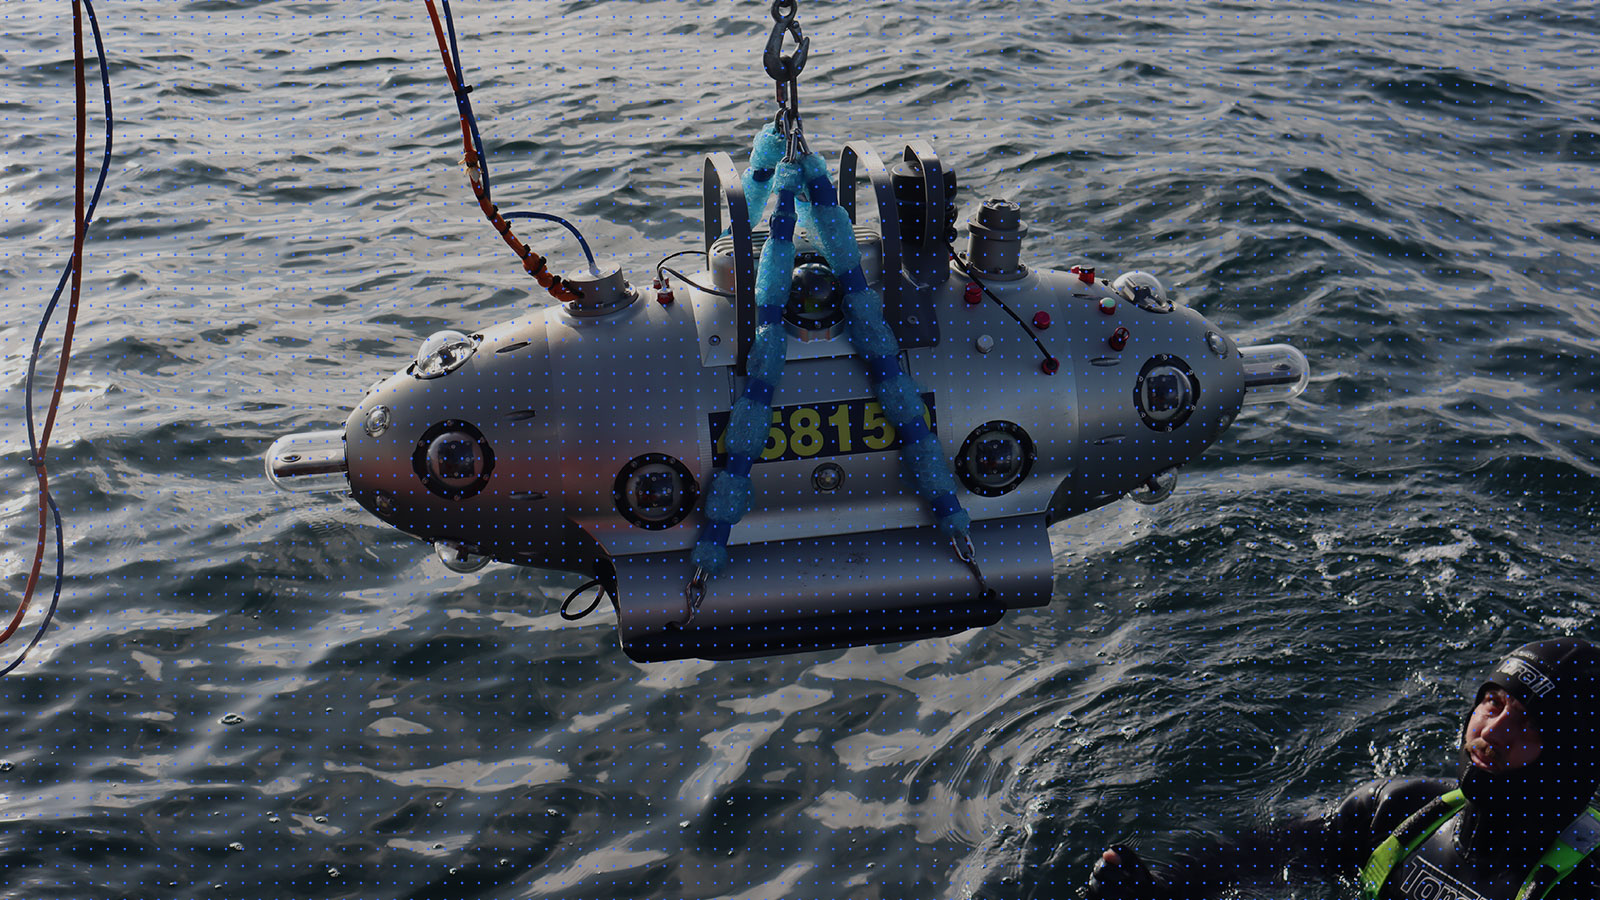 Video of AUV operation